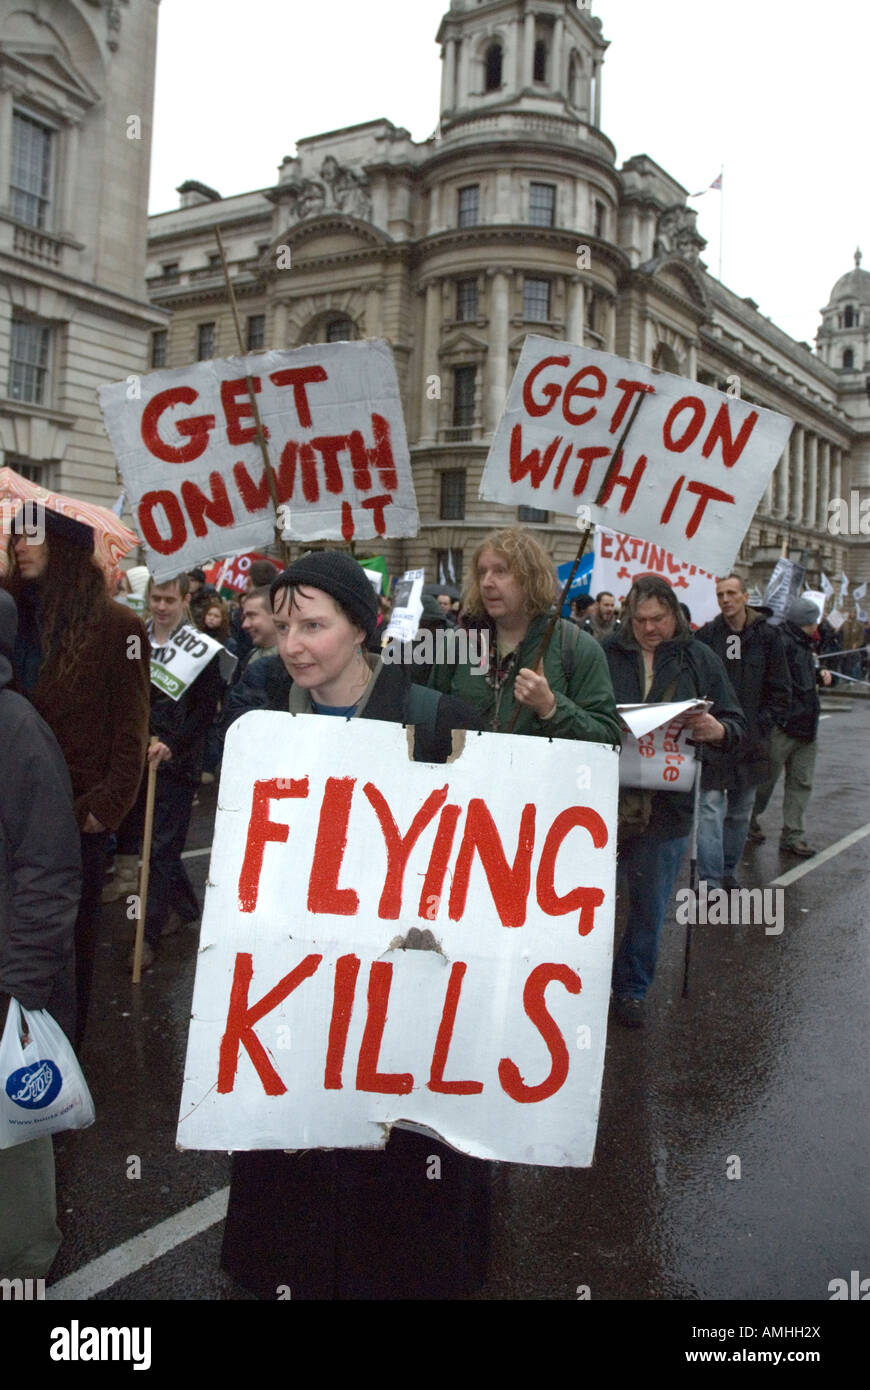 Flying Kills protestors placards Climate Change march London December 8th 2007 Stock Photo